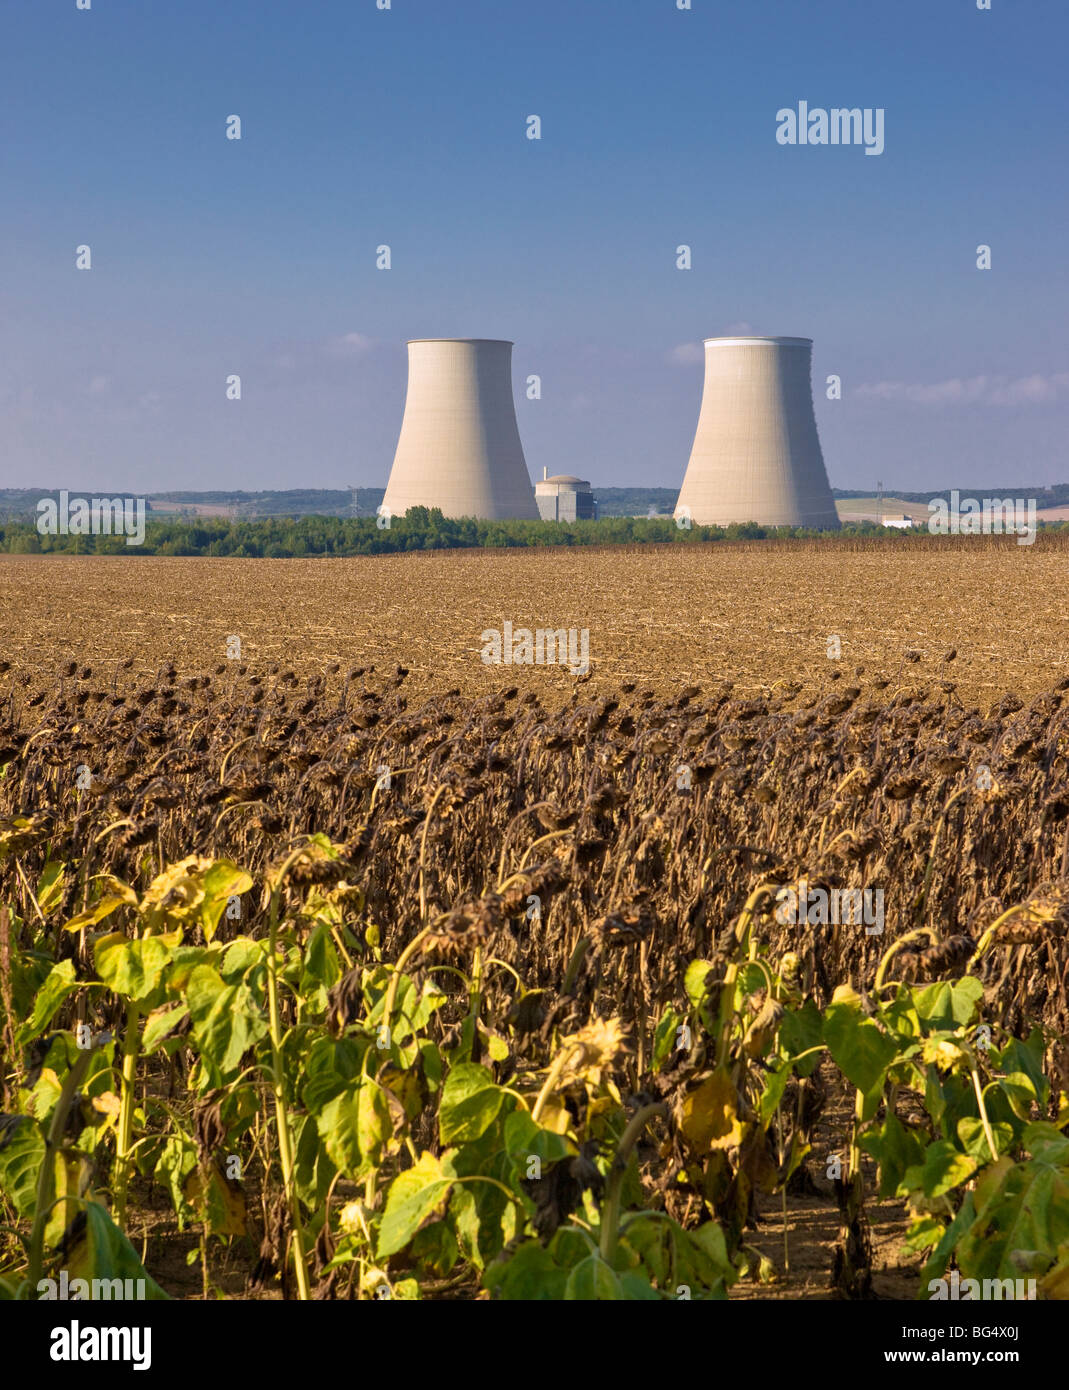 The cooling towers of the nuclear power plant at Nogent-sur-Seine, a town near Paris, France Stock Photo